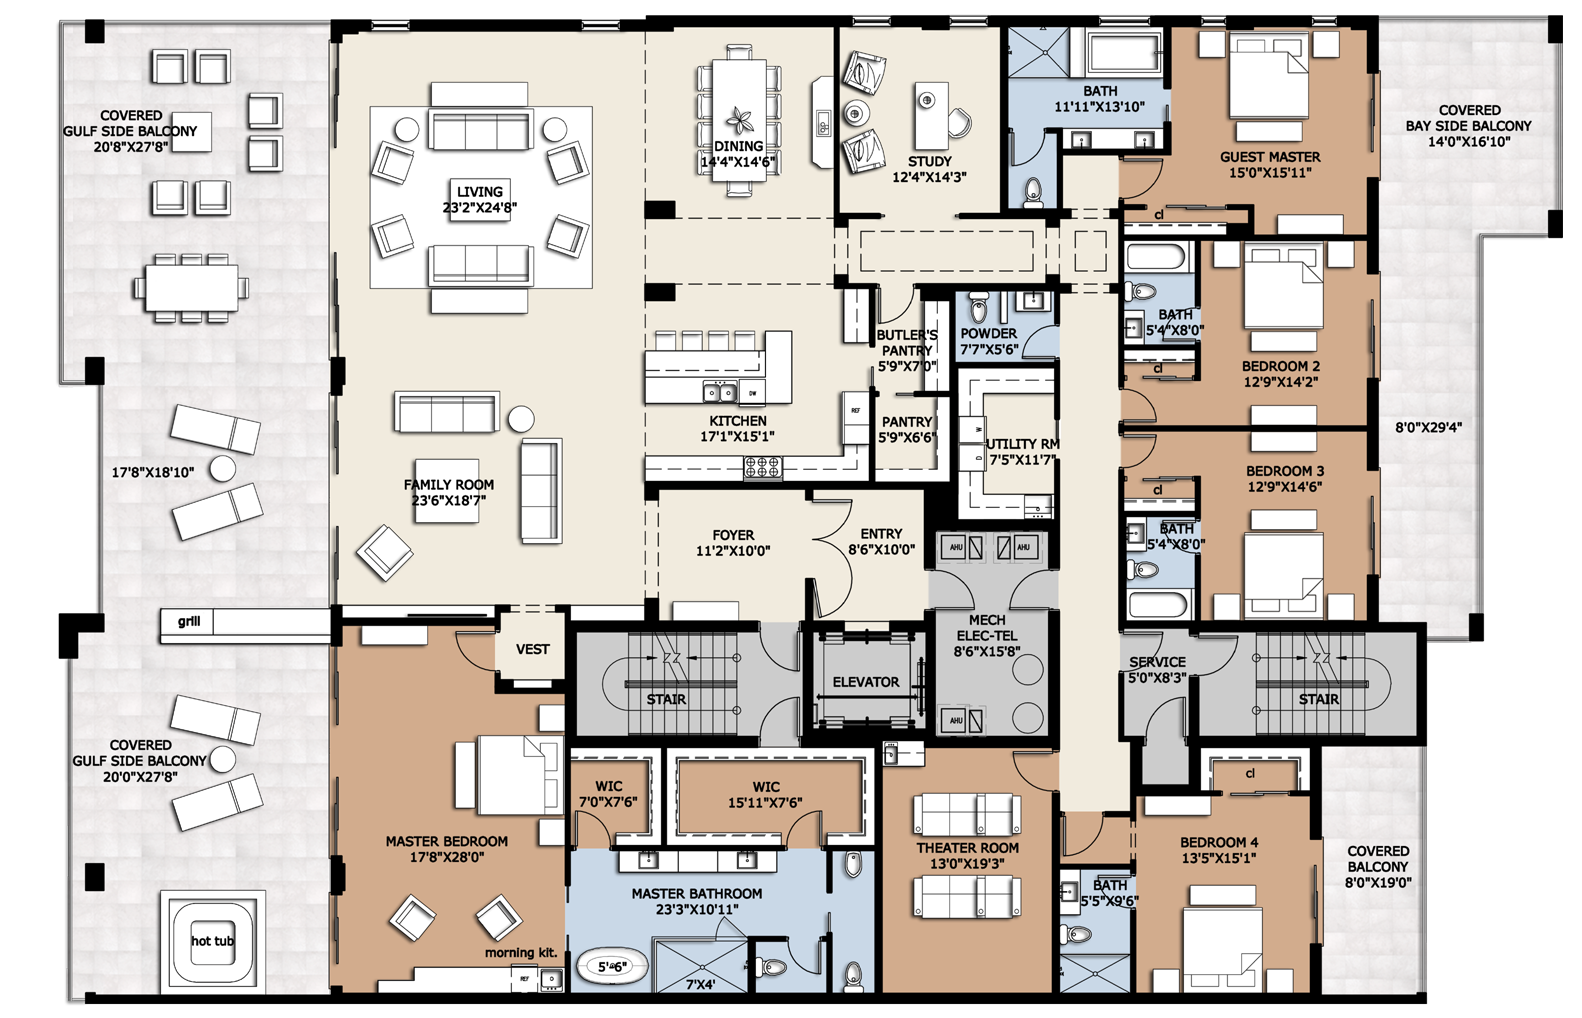 Bedroom Floor Layout Five Bedroom Apartment Residences Penthouse Luxury